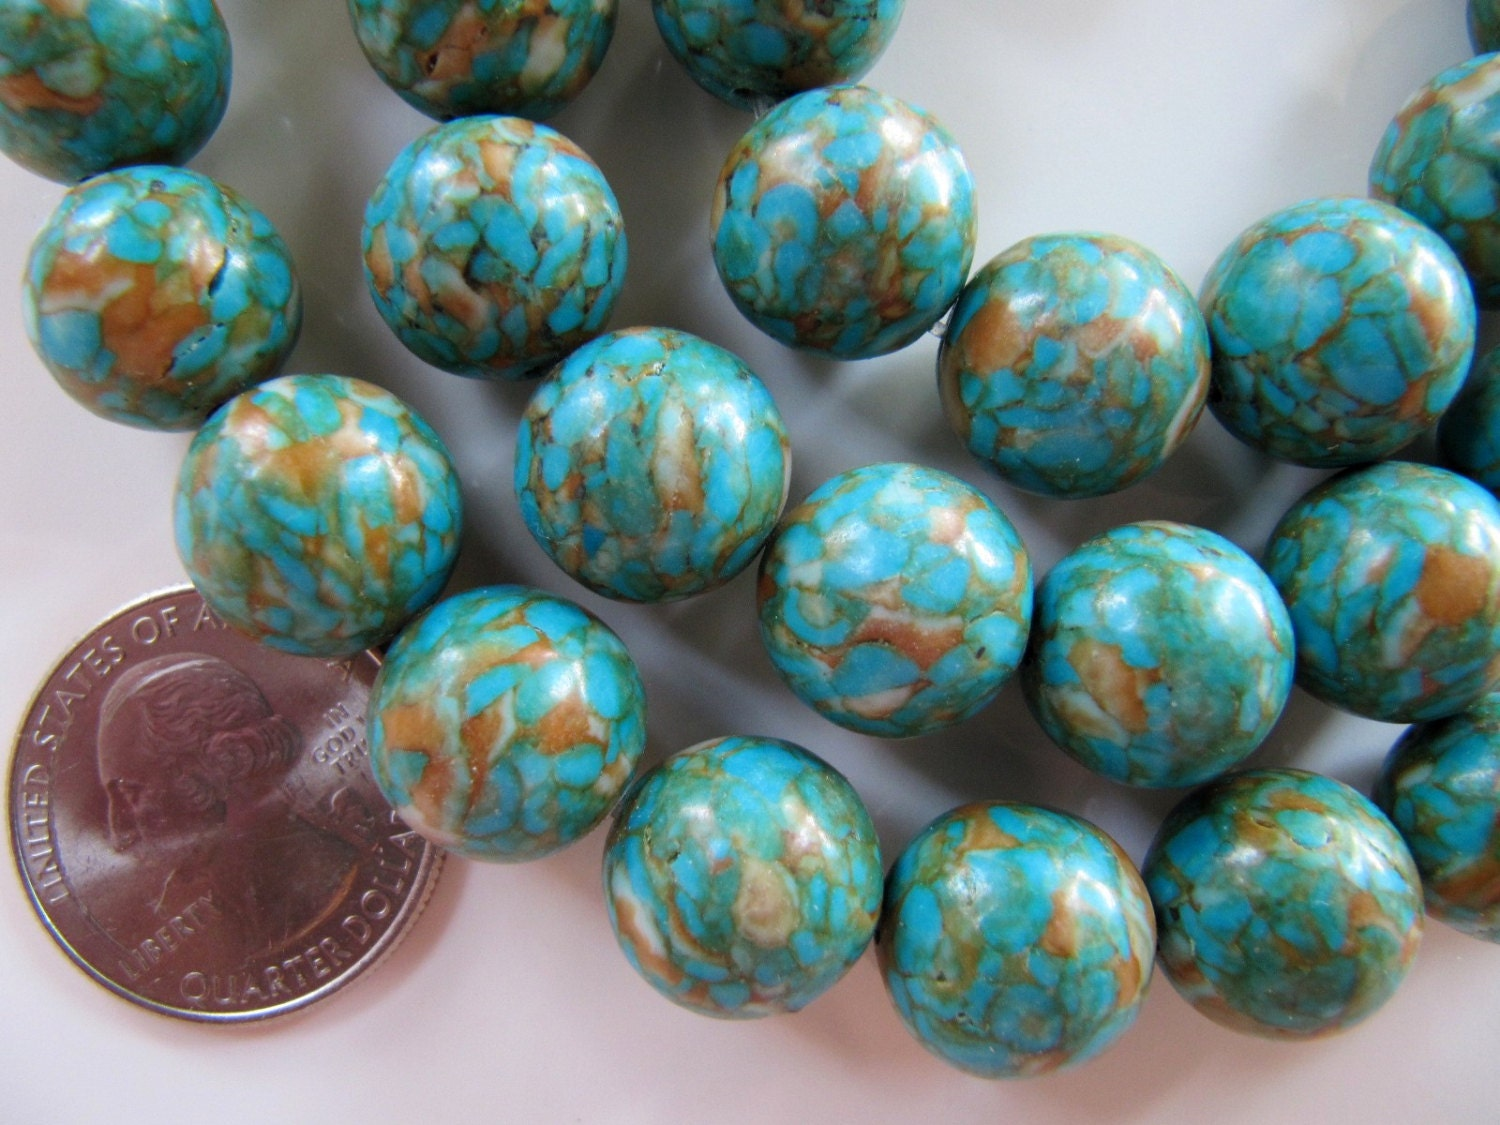 Mosaic Turquoise Beads 13mm To 14mm 15 Beads Round Blue